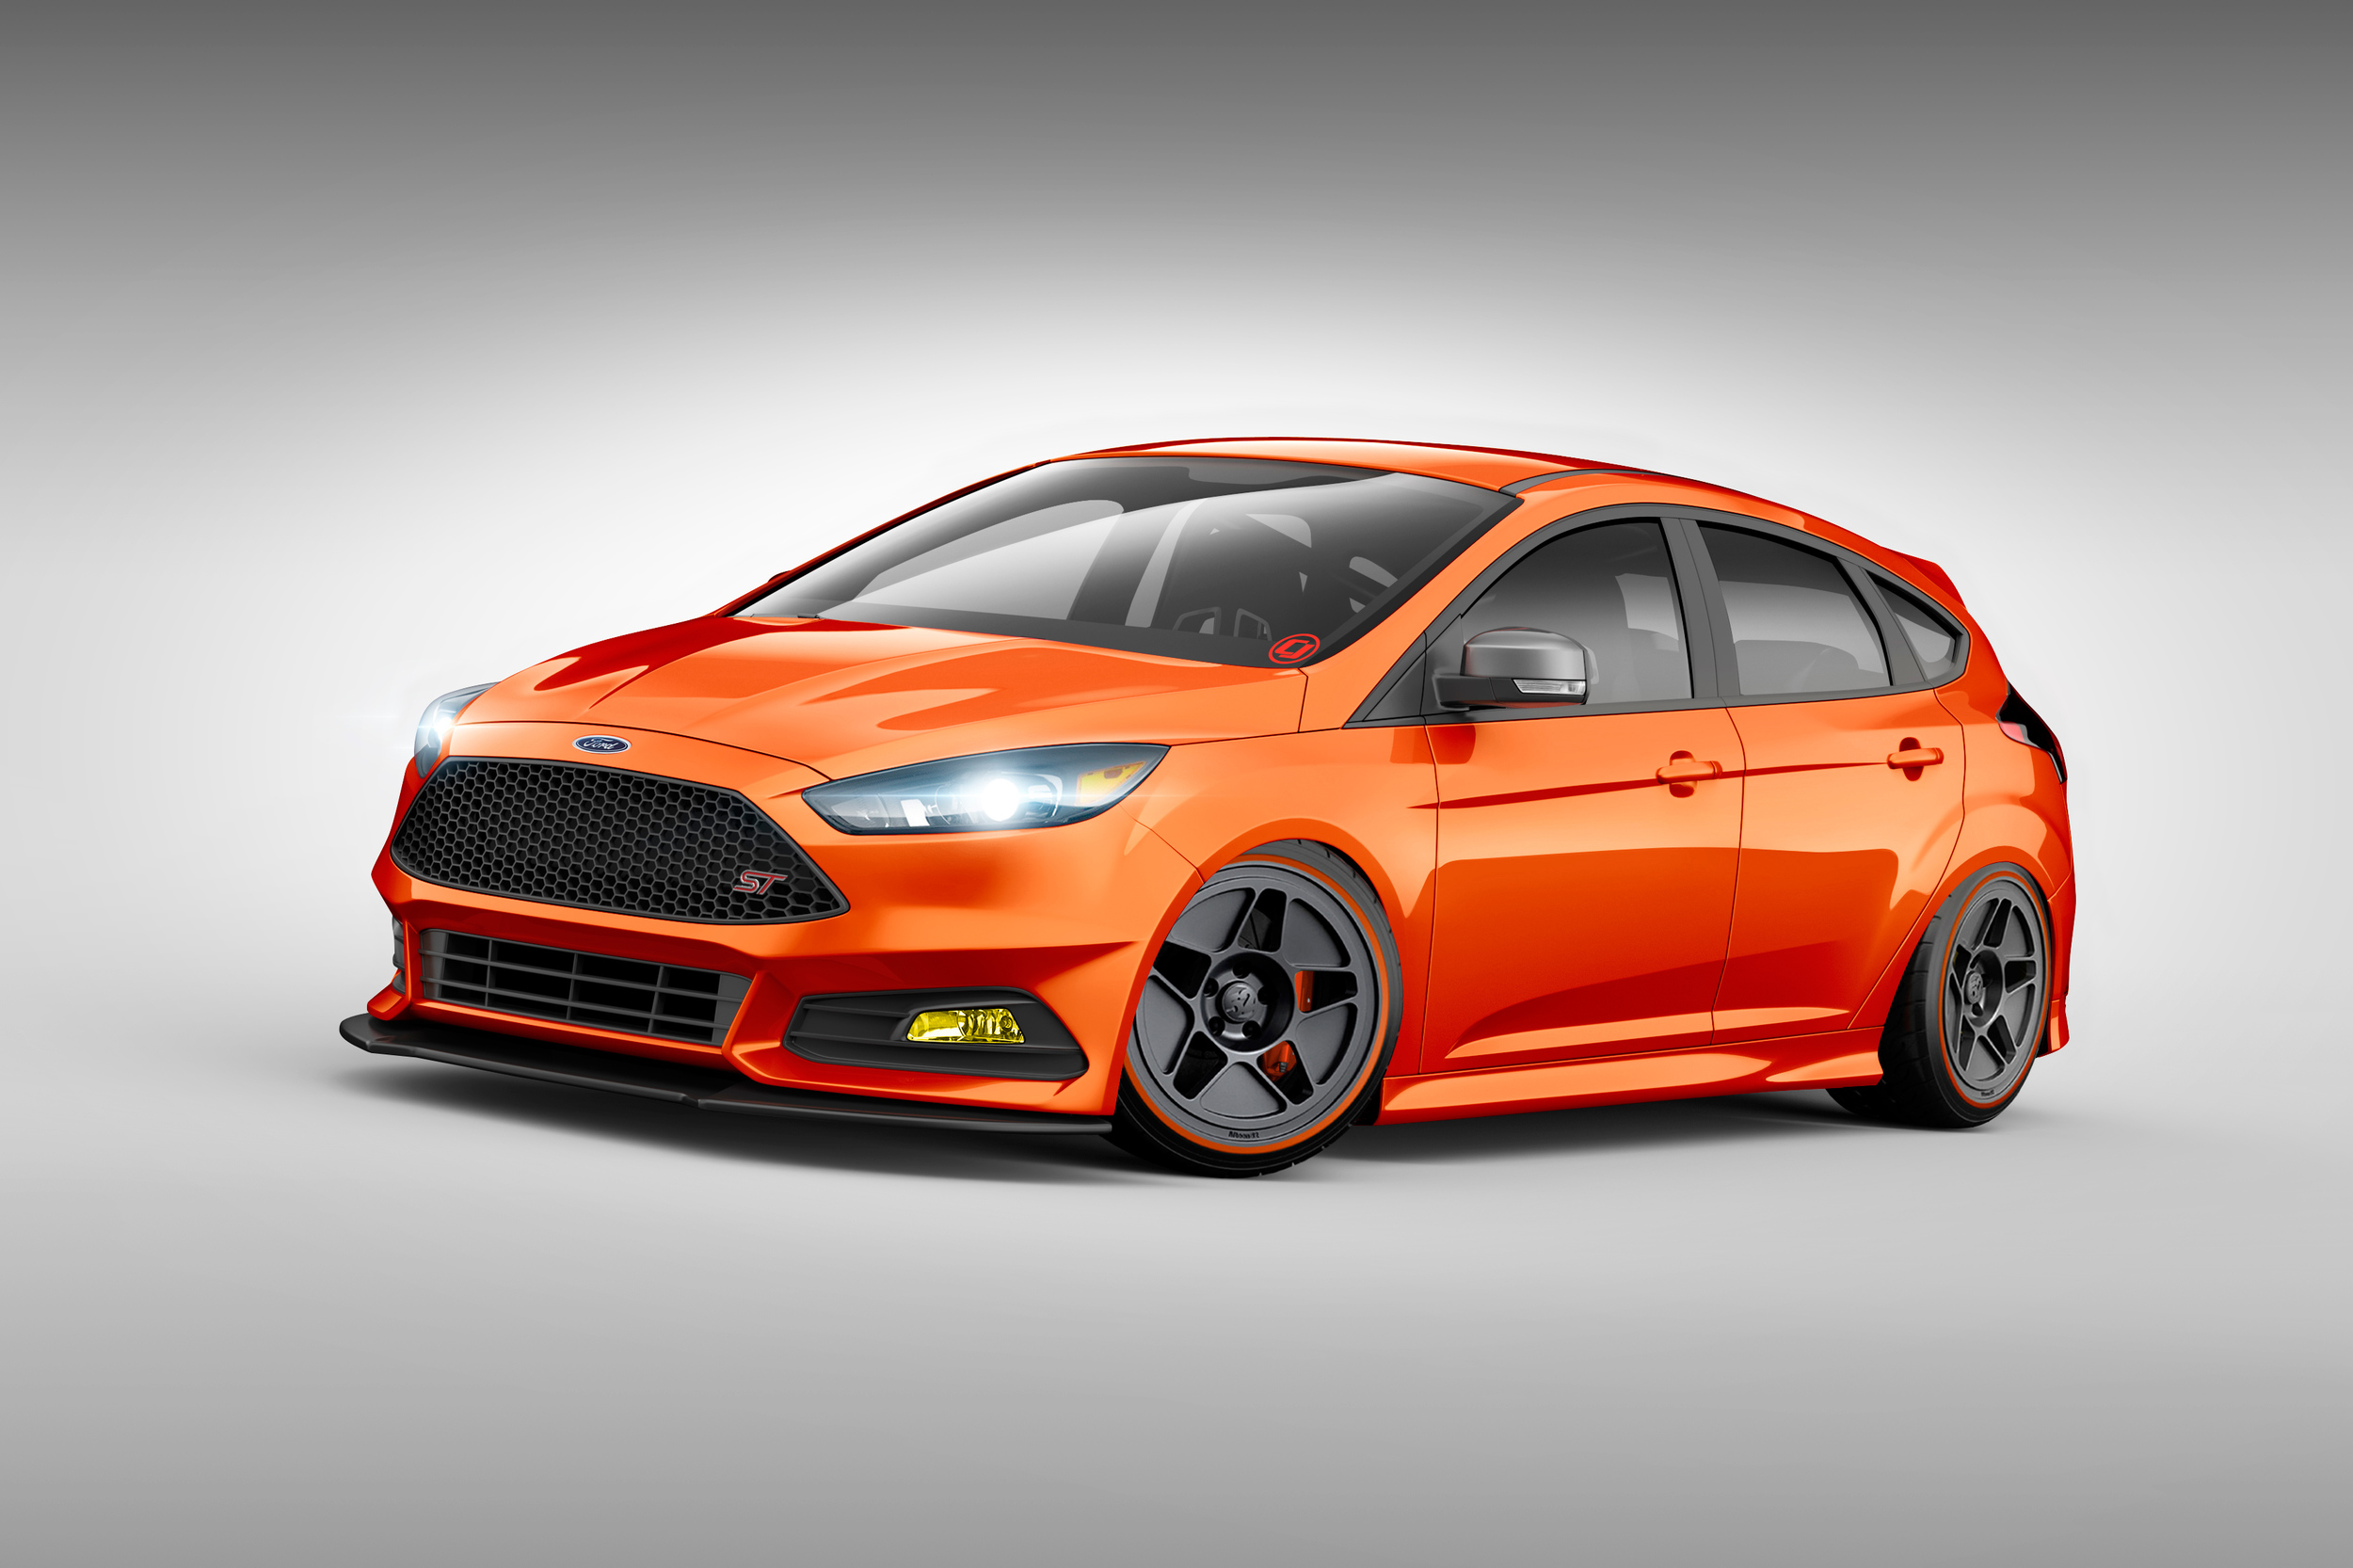 warranty focus product great maintenance and with awesomeamazinggreat st ford free